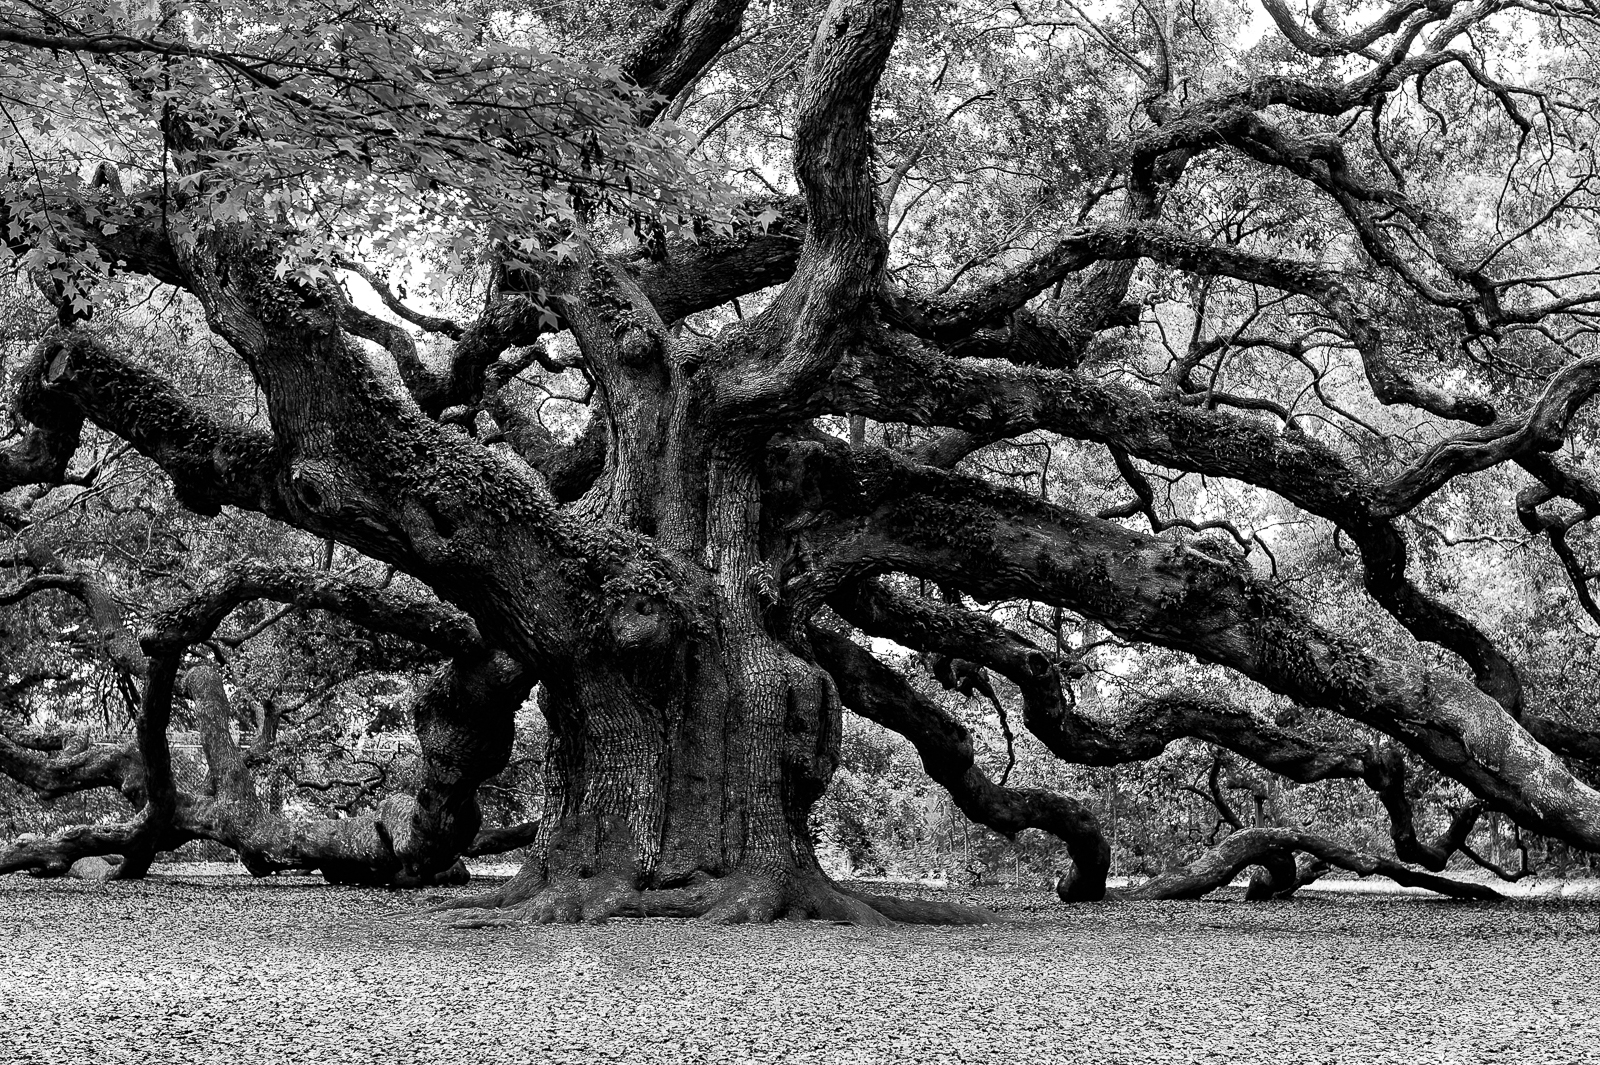 More angel oak tree